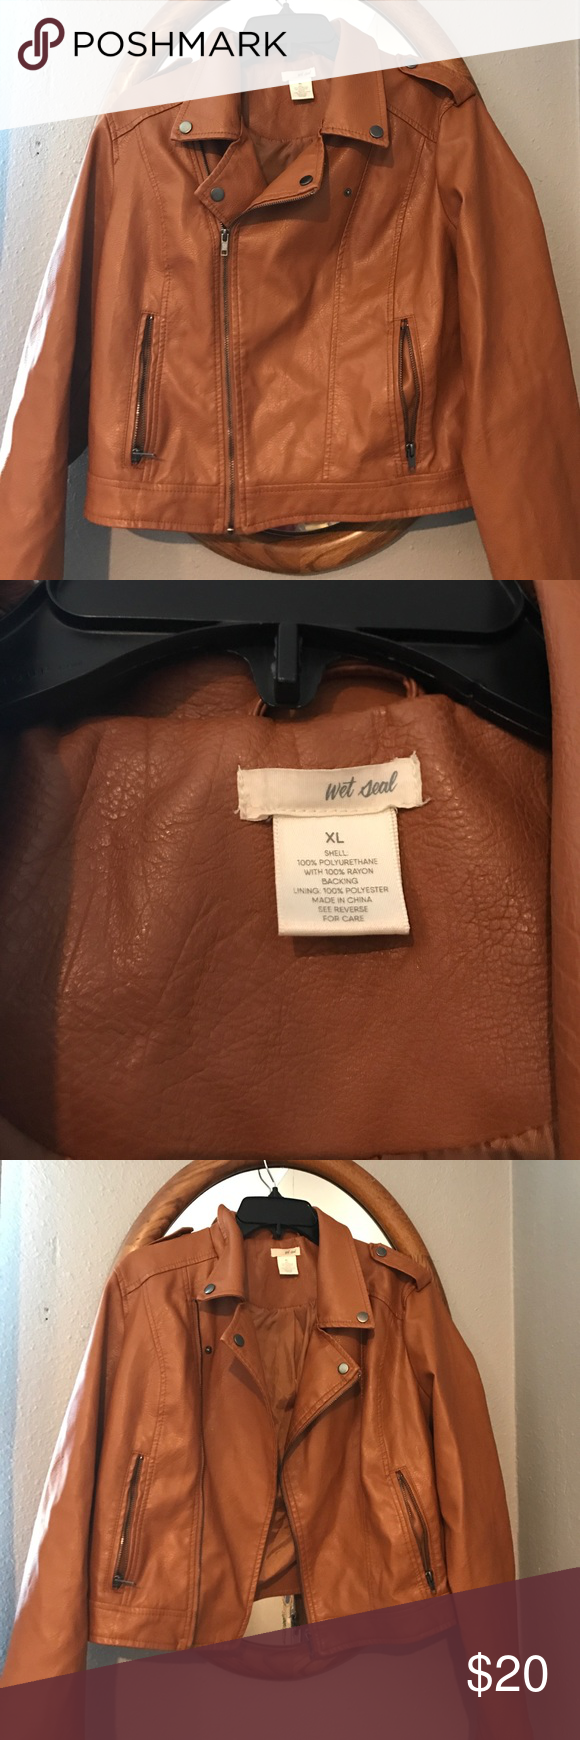 Brown Faux Leather Jacket This jacket is from Wet Seal! Brand new never been worn. NWOT. XL was just too big for me. Perfect condition. Great color! Wet Seal Jackets & Coats